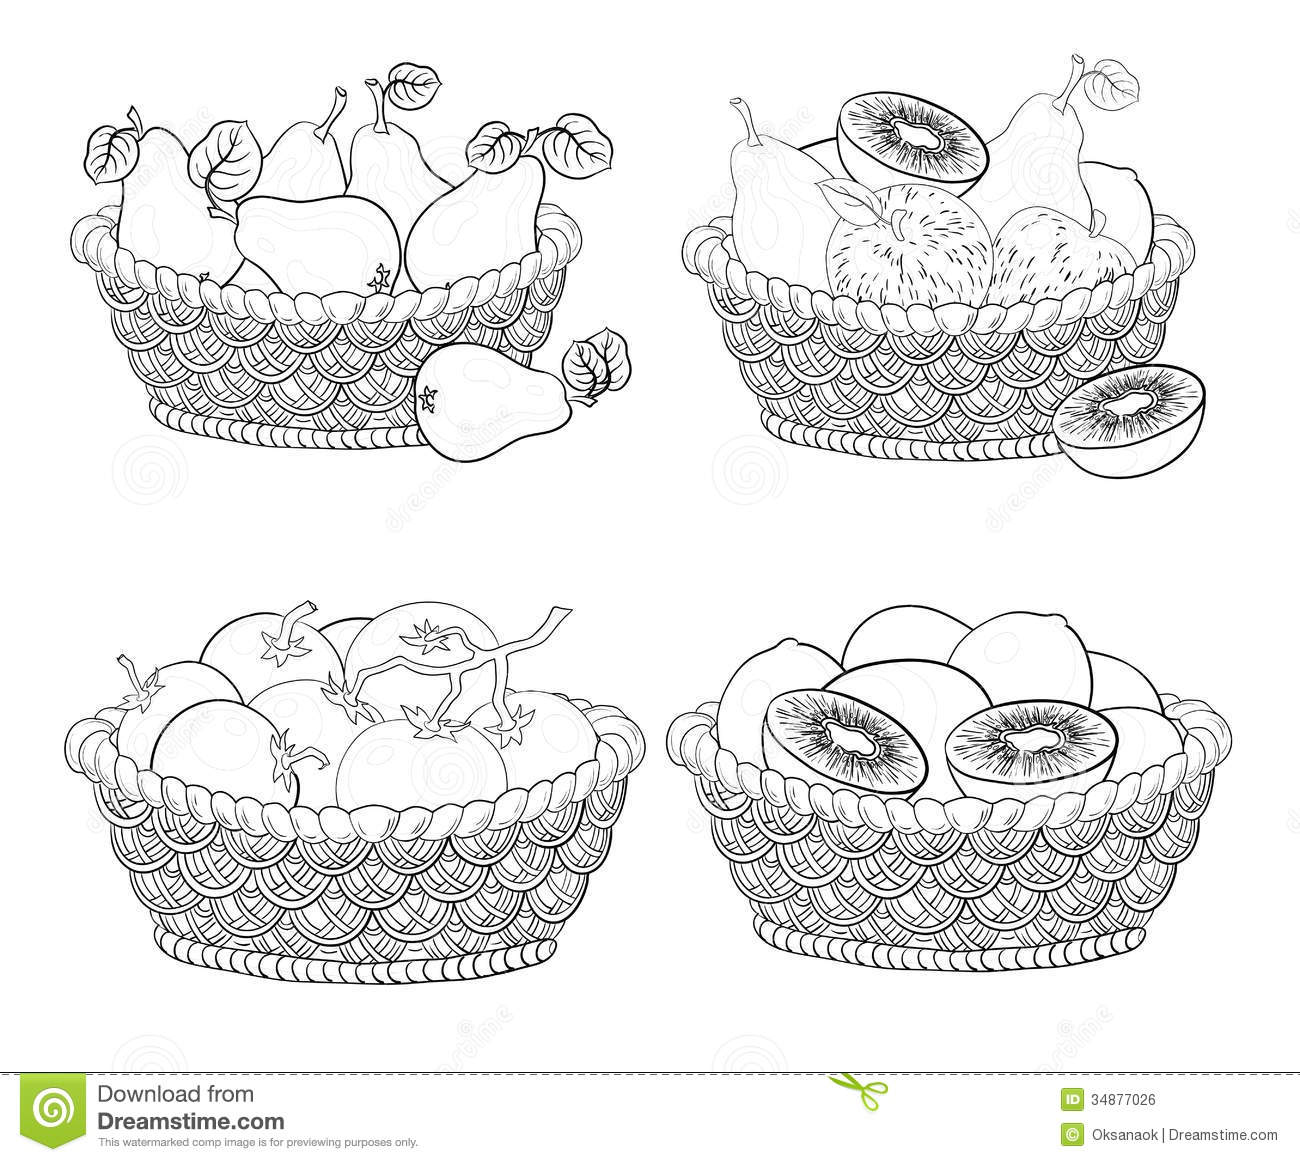 Baskets With Fruits And Vegetables, Outline Royalty Free